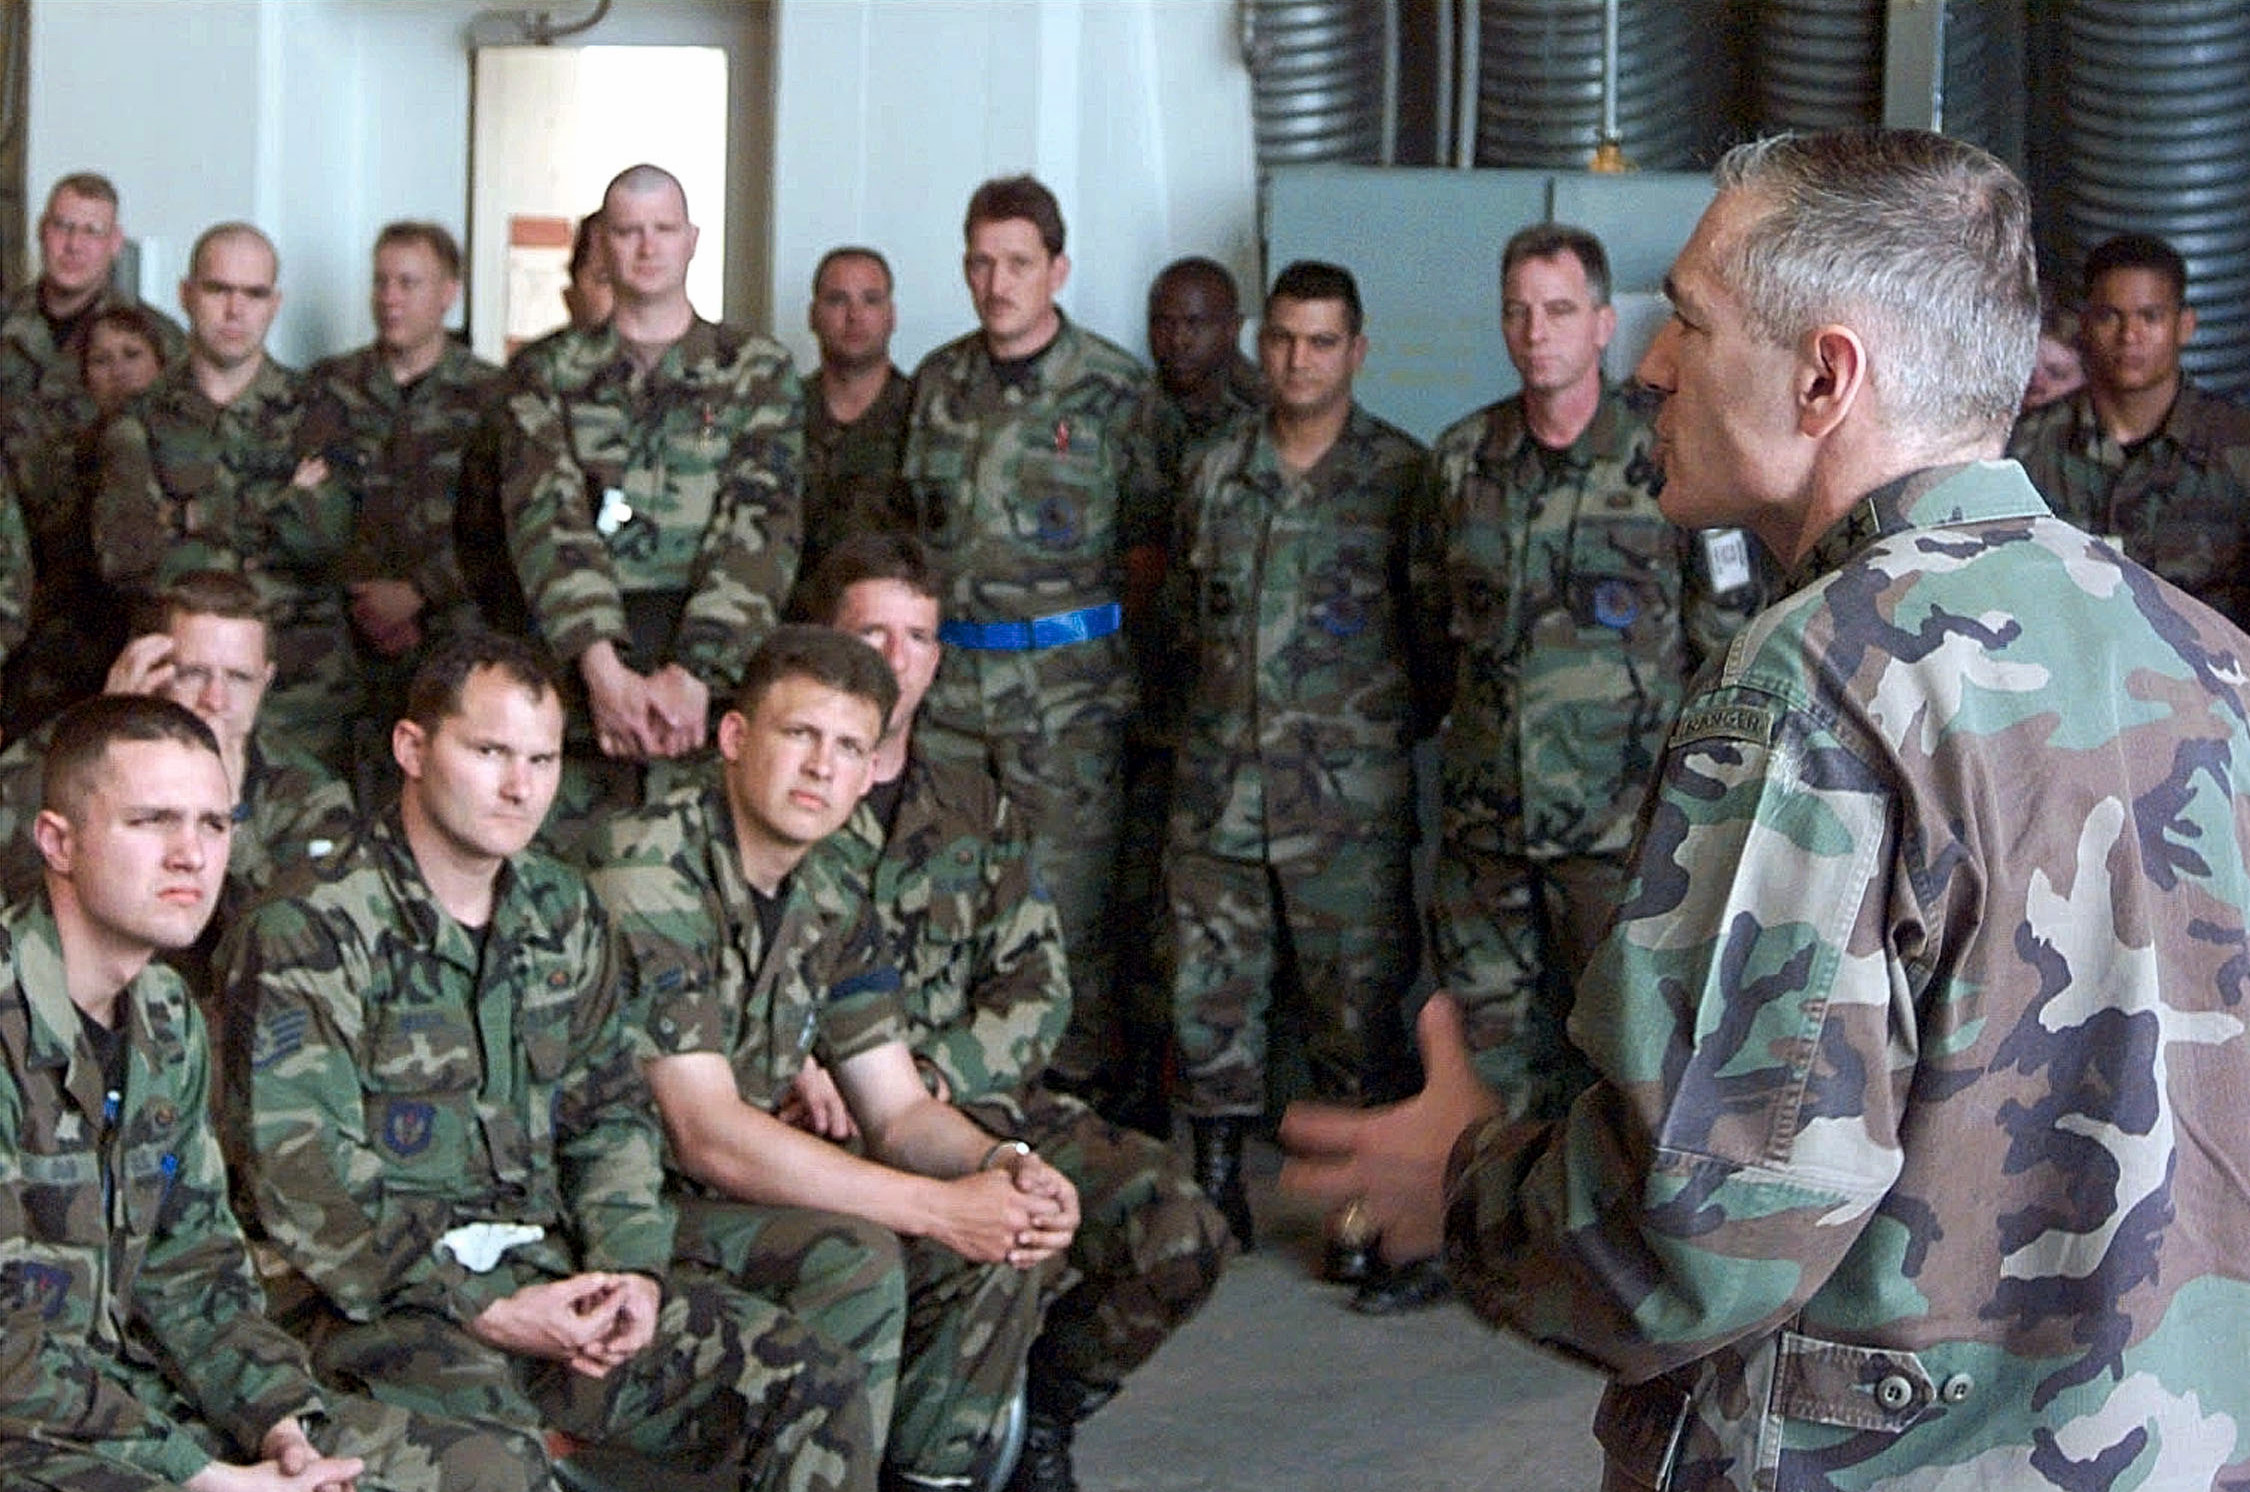 General Wesley Clark, Supreme Allied Commander of Europe, meets with members of the 510th Fighter Squadron and the 555th Fighter Squadron who are deployed to Aviano Air Base, Italy, on May 9, 1999, in support of NATO Operation Allied Force. (SrA Mitch Fuqua/USAF Photo/Wikimedia)